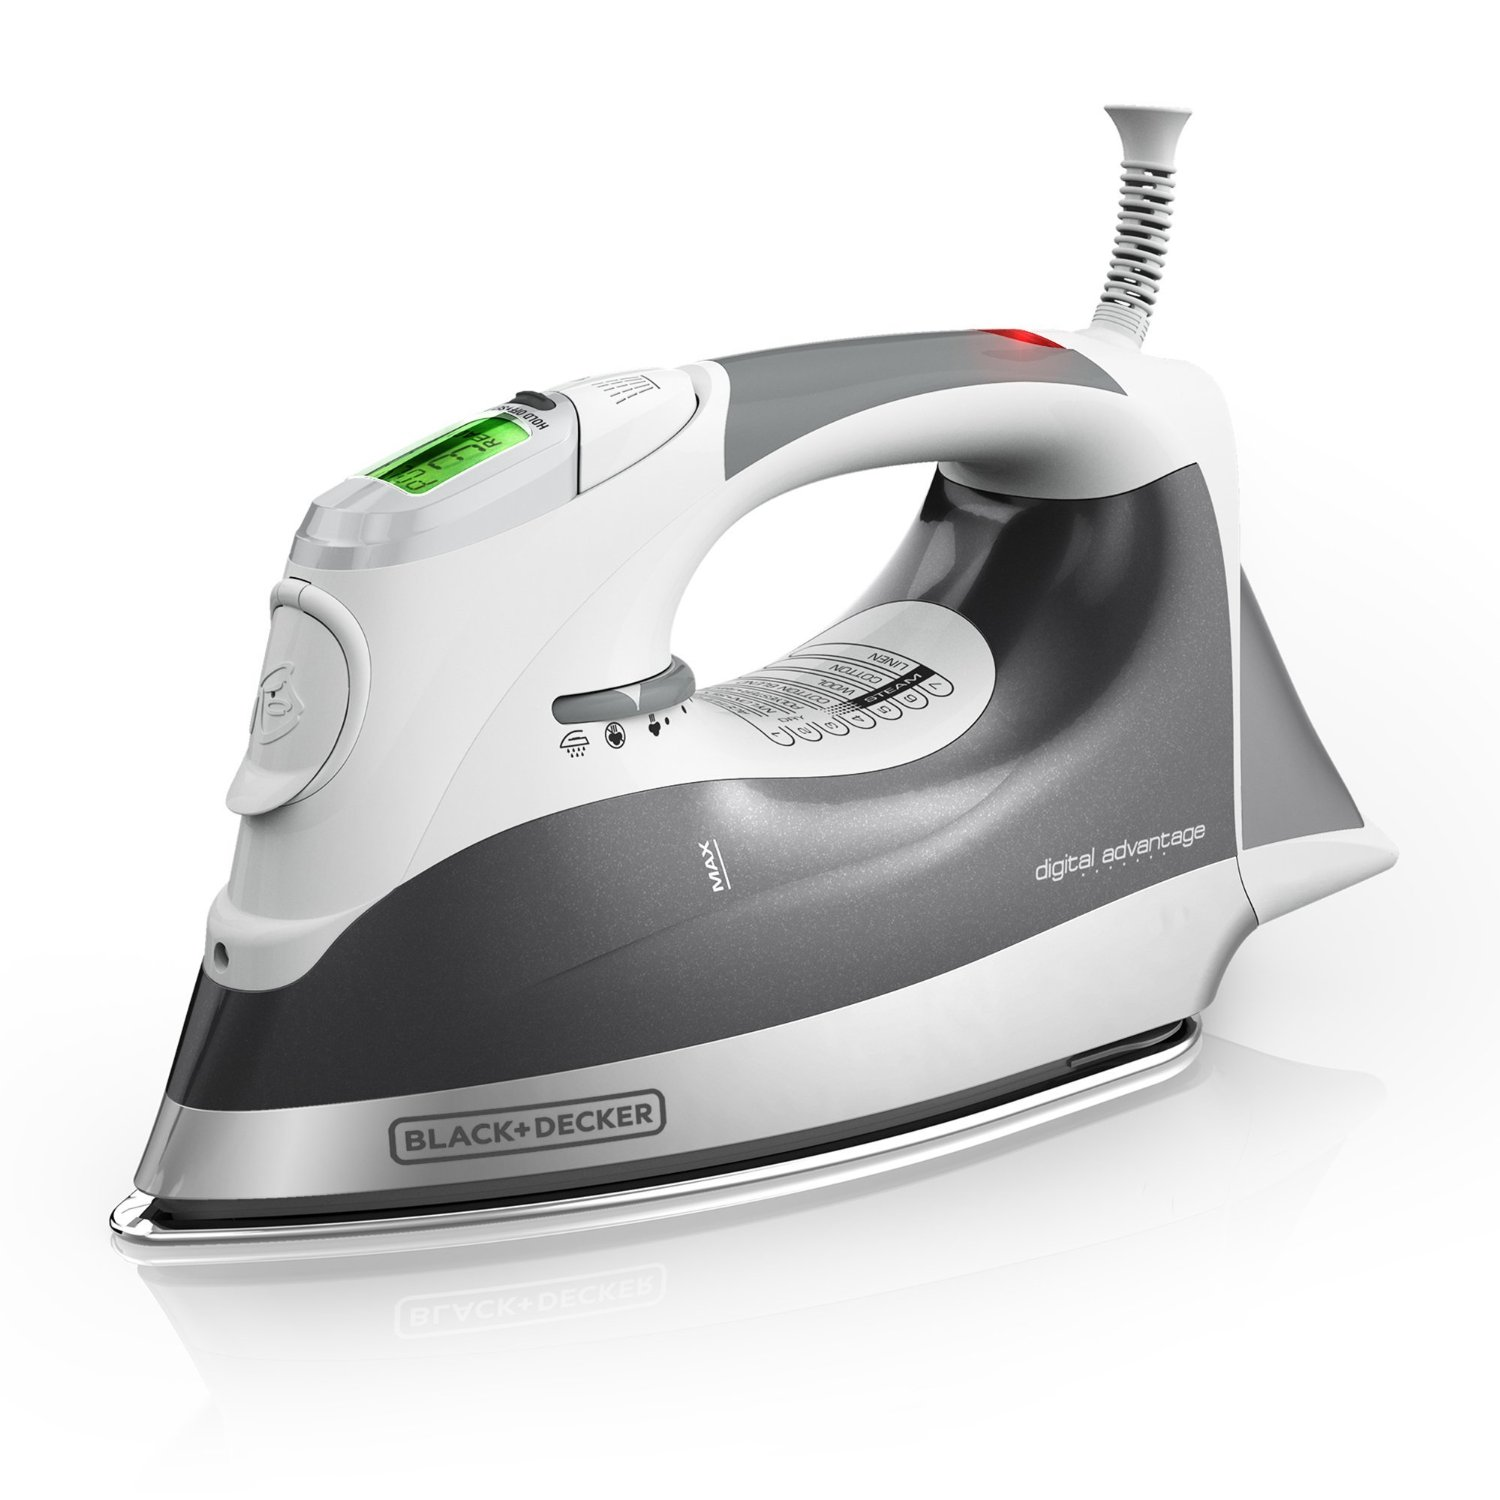 best steam iron 9 best steam irons for clothes in 2018 clothing iron reviews 28433